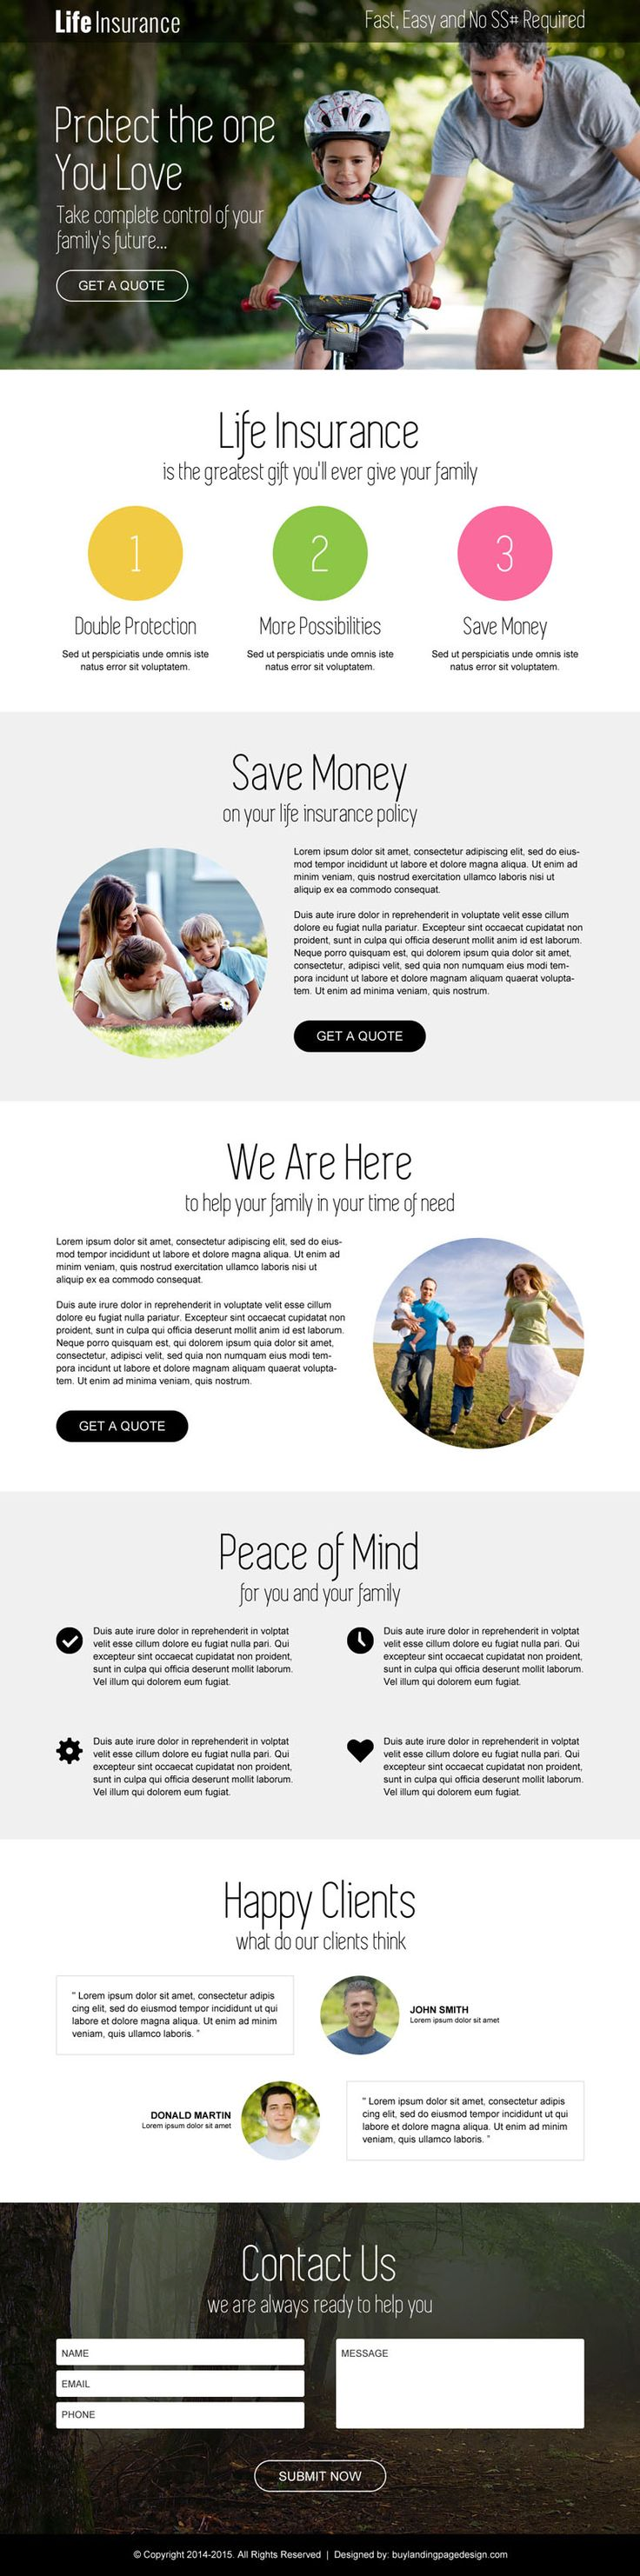 life-insurance-free-quote-service-lp-013 | Insurance landing page design preview. http://buff.ly/1B3Lhpi